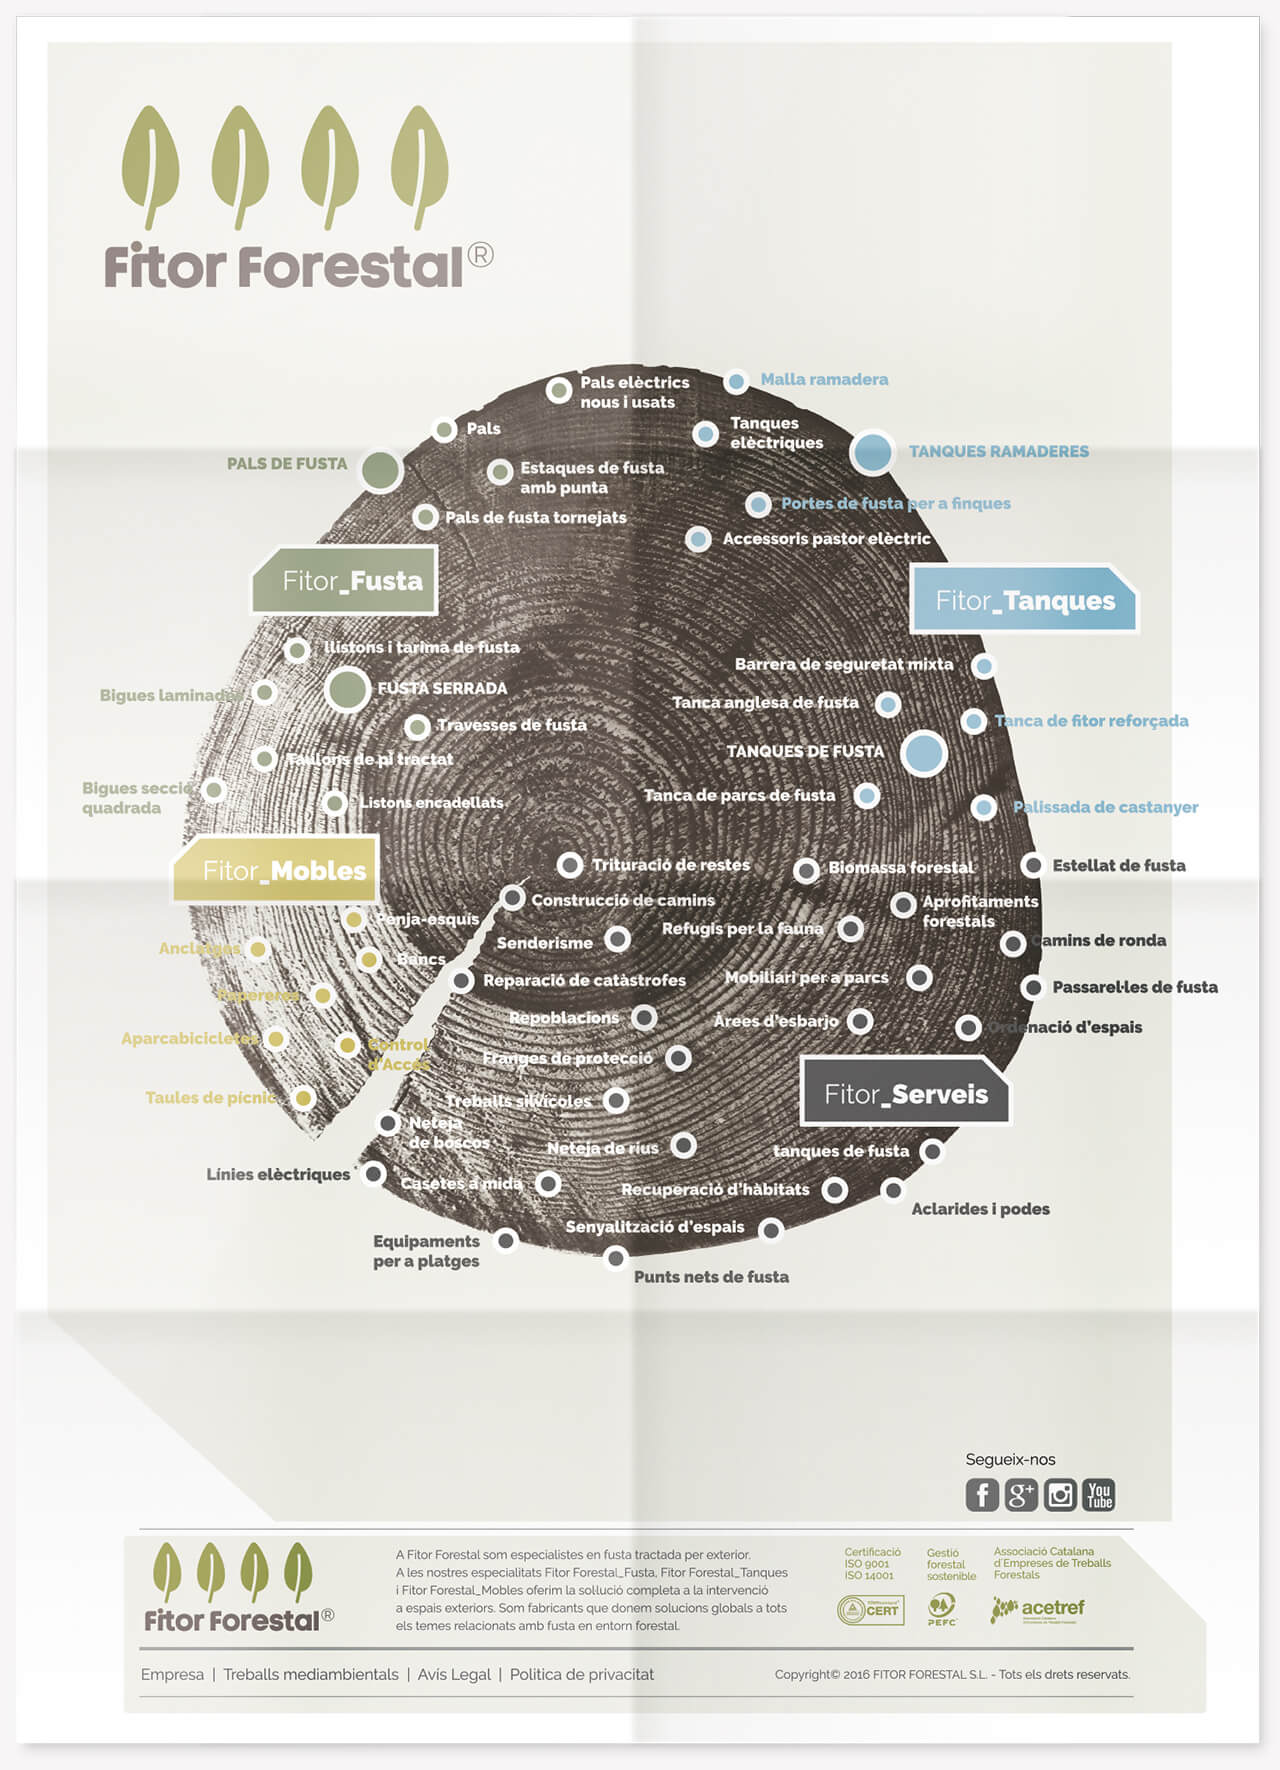 fitor-forestal-poster